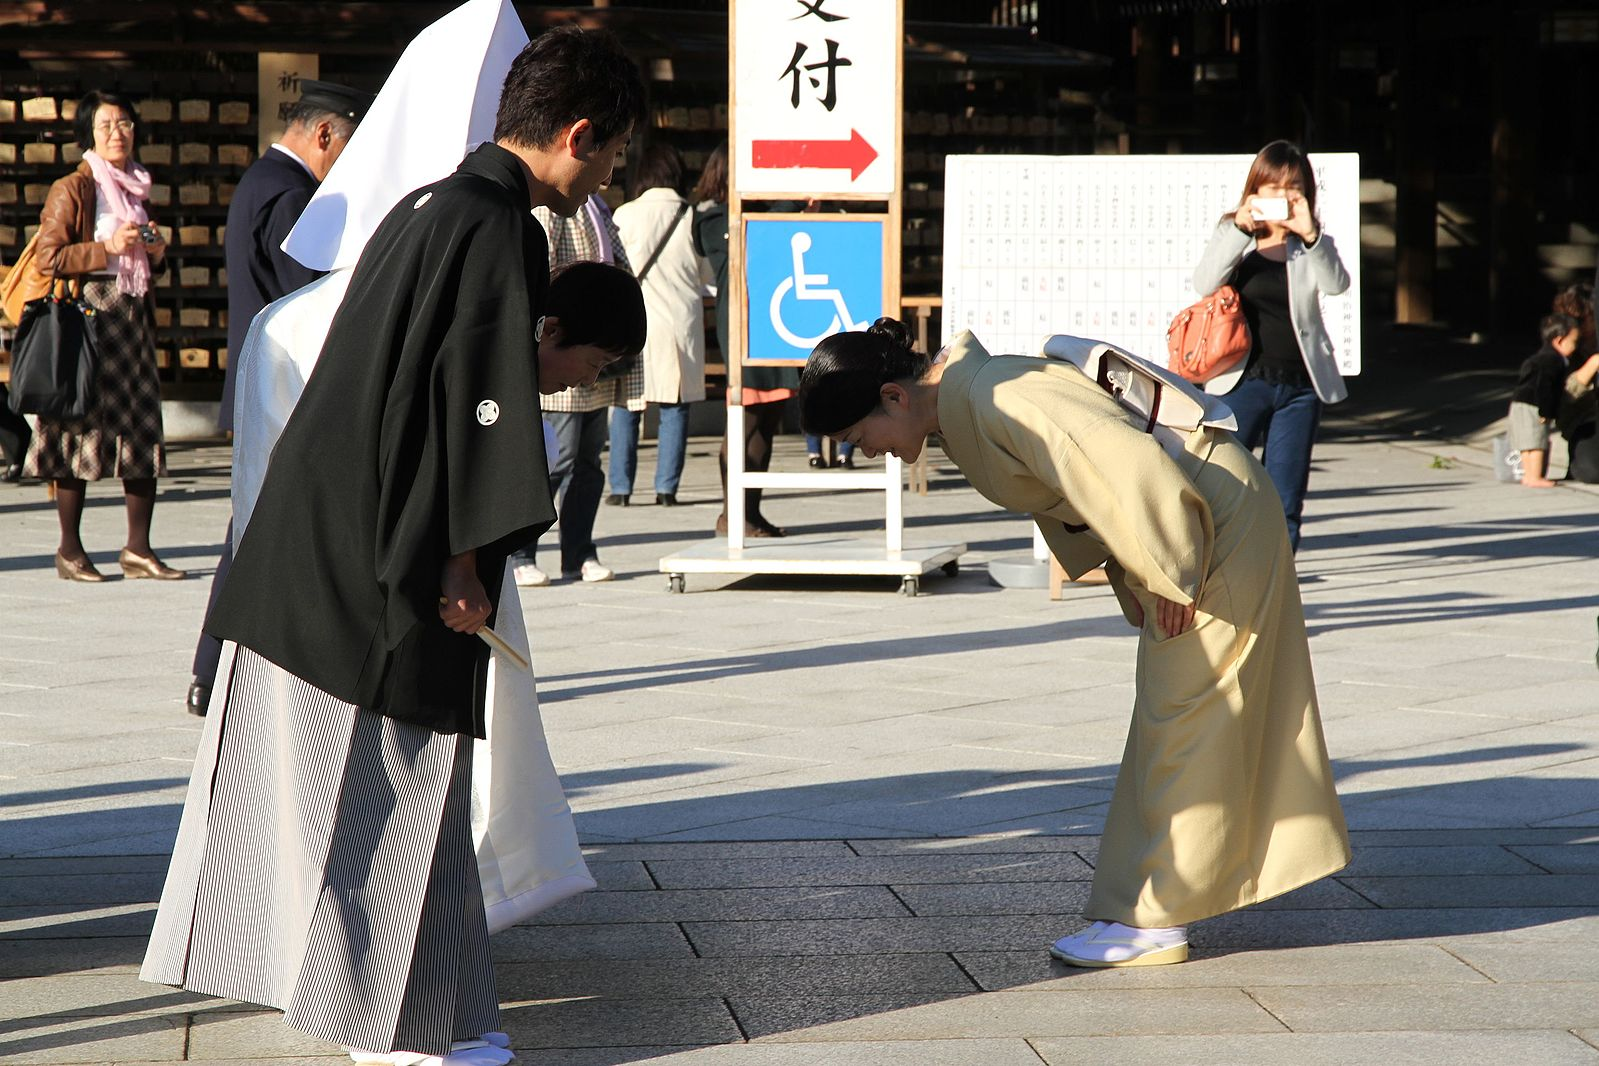 Bowing in Japan is used in greetings, to express gratitude, or apology as an indication of respect.